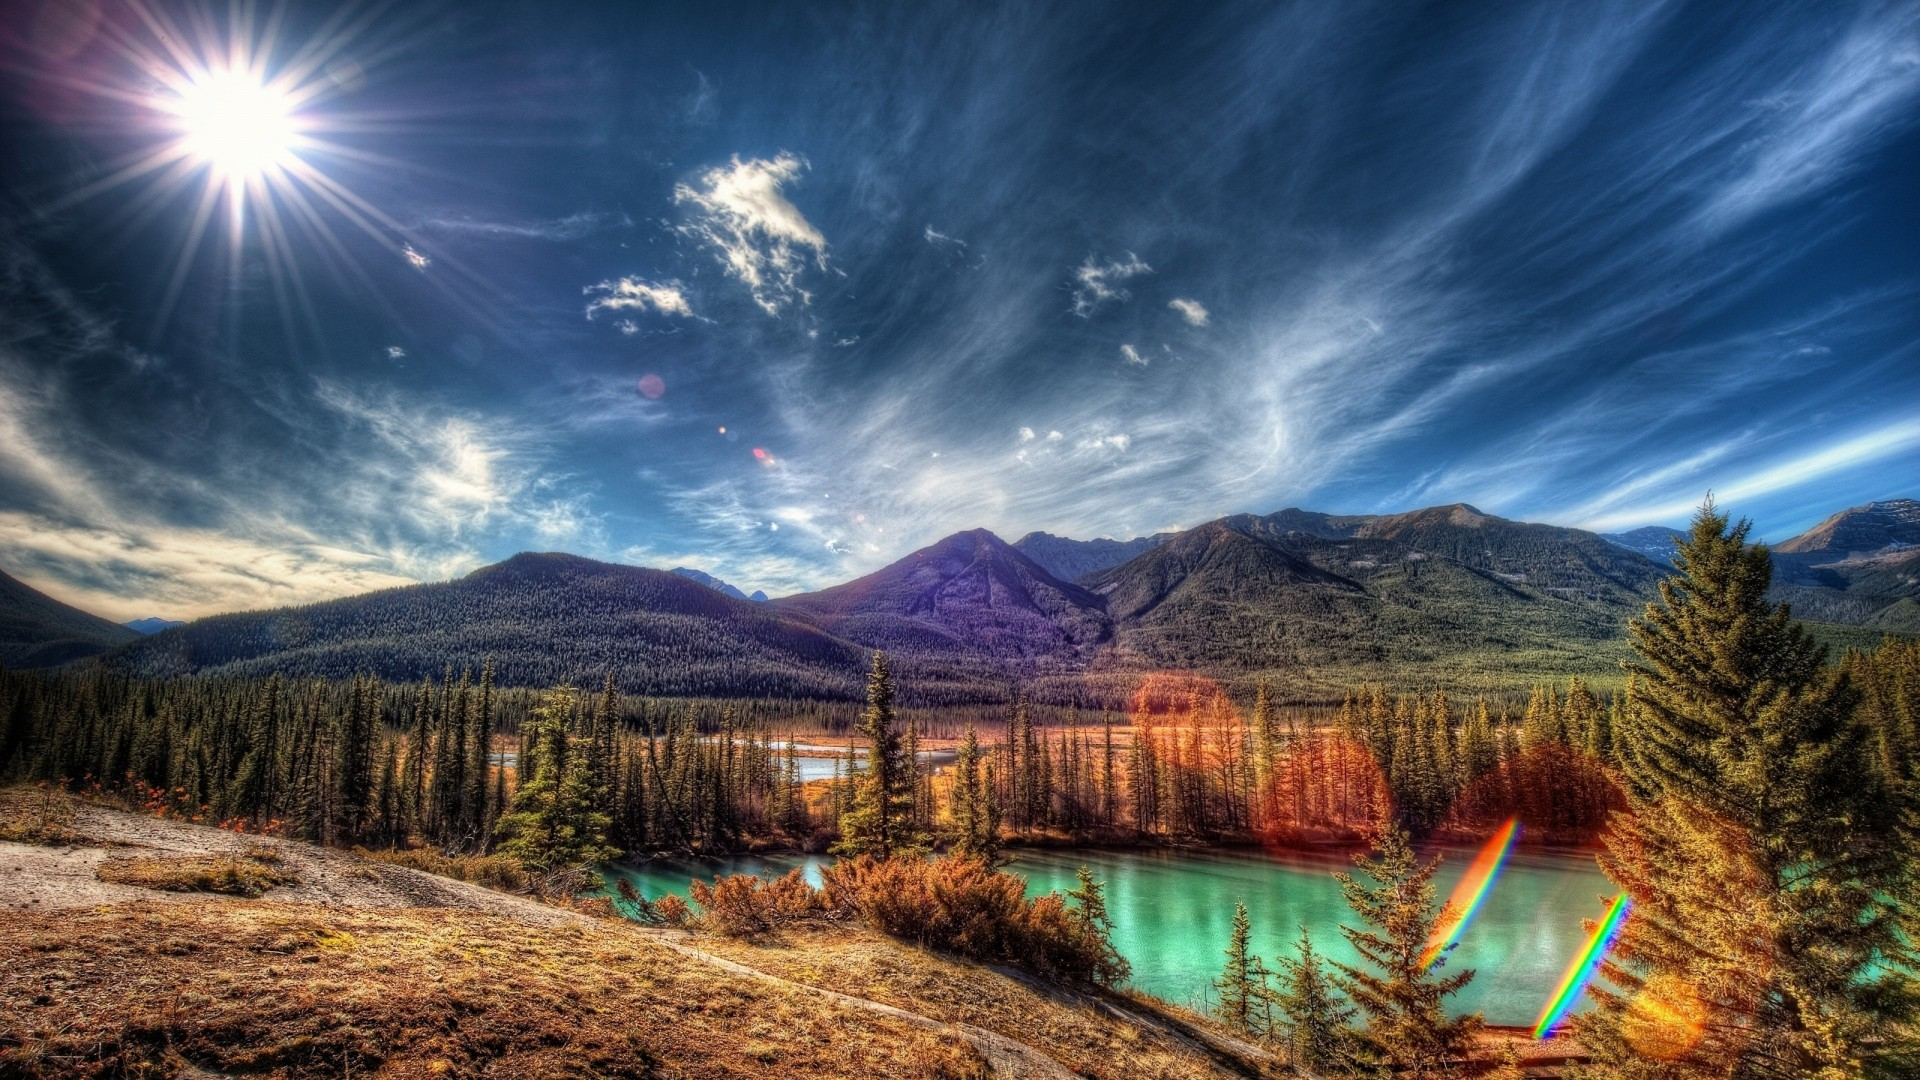 Free Downloads Quotes Wallpaper Mobile Sun Rays Over Amazing Natural Landscape Wallpapers